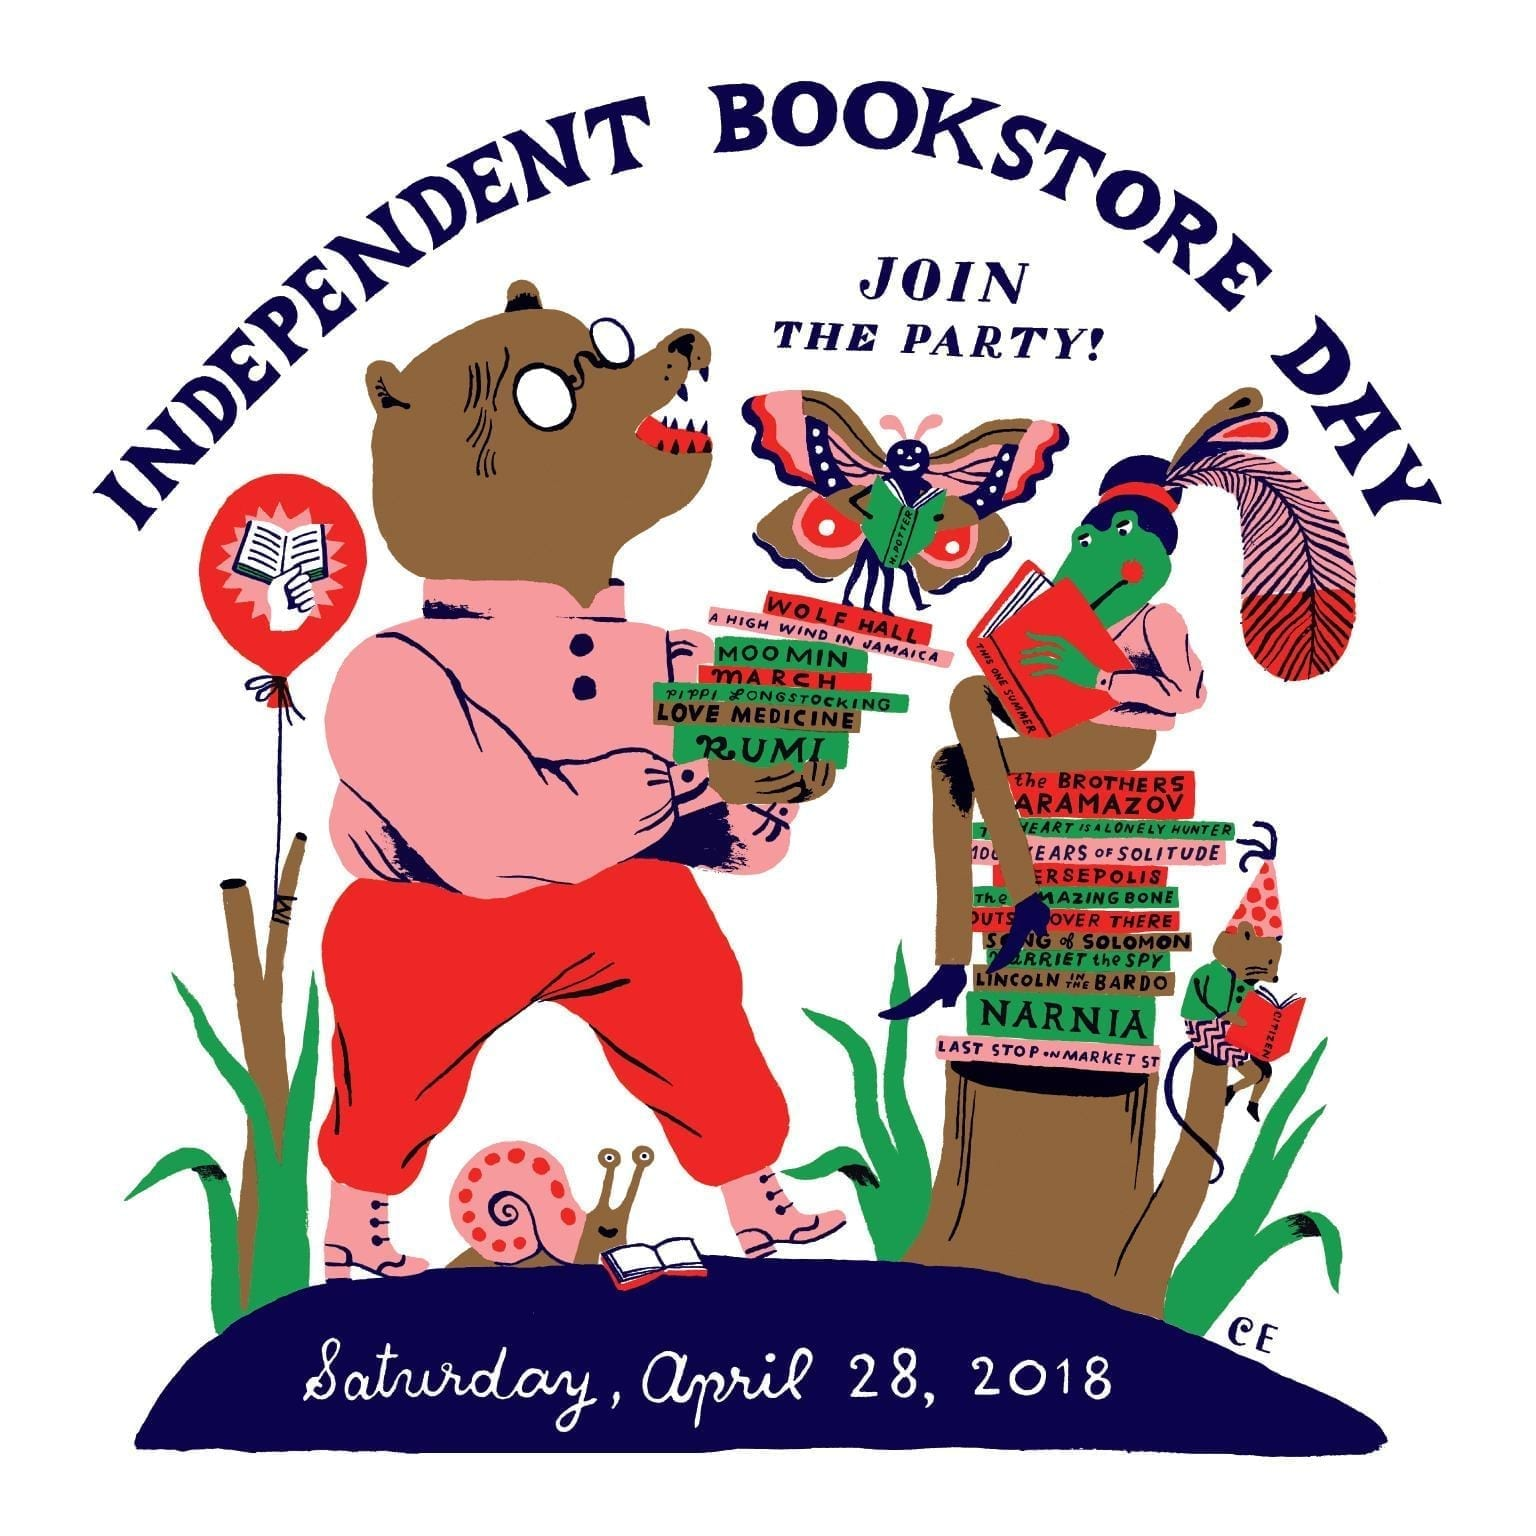 Touring Bellingham for Independent Bookstore Day